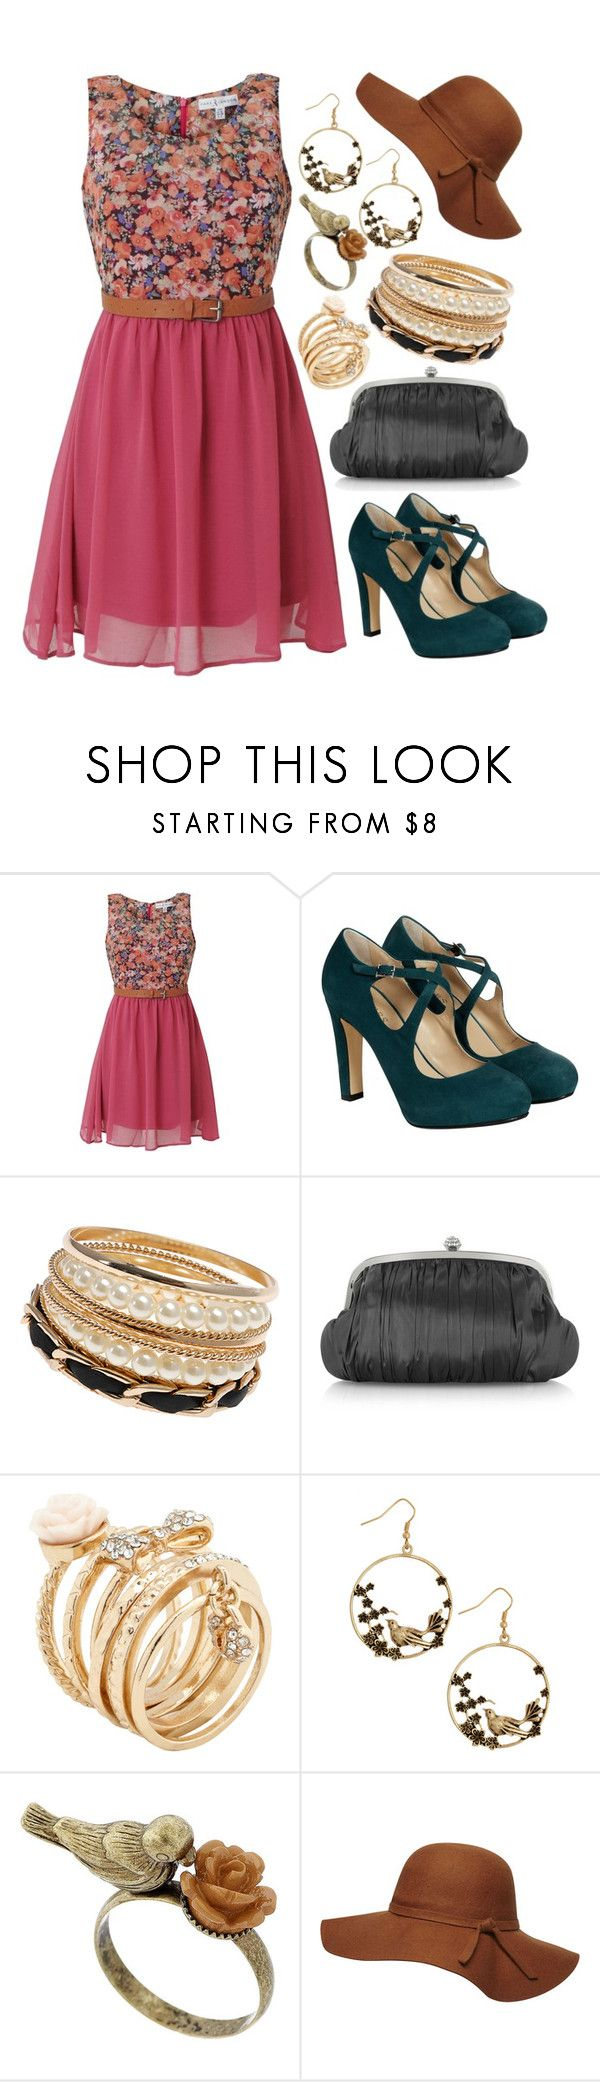 Mix & Match: Summer Outfit #169 by mscody on Polyvore featuring Rare London, Hobbs, Julia Cocco', ALDO, Dorothy Perkins, vintage, Summer, summerstyle, summeroutfit and summerfashion